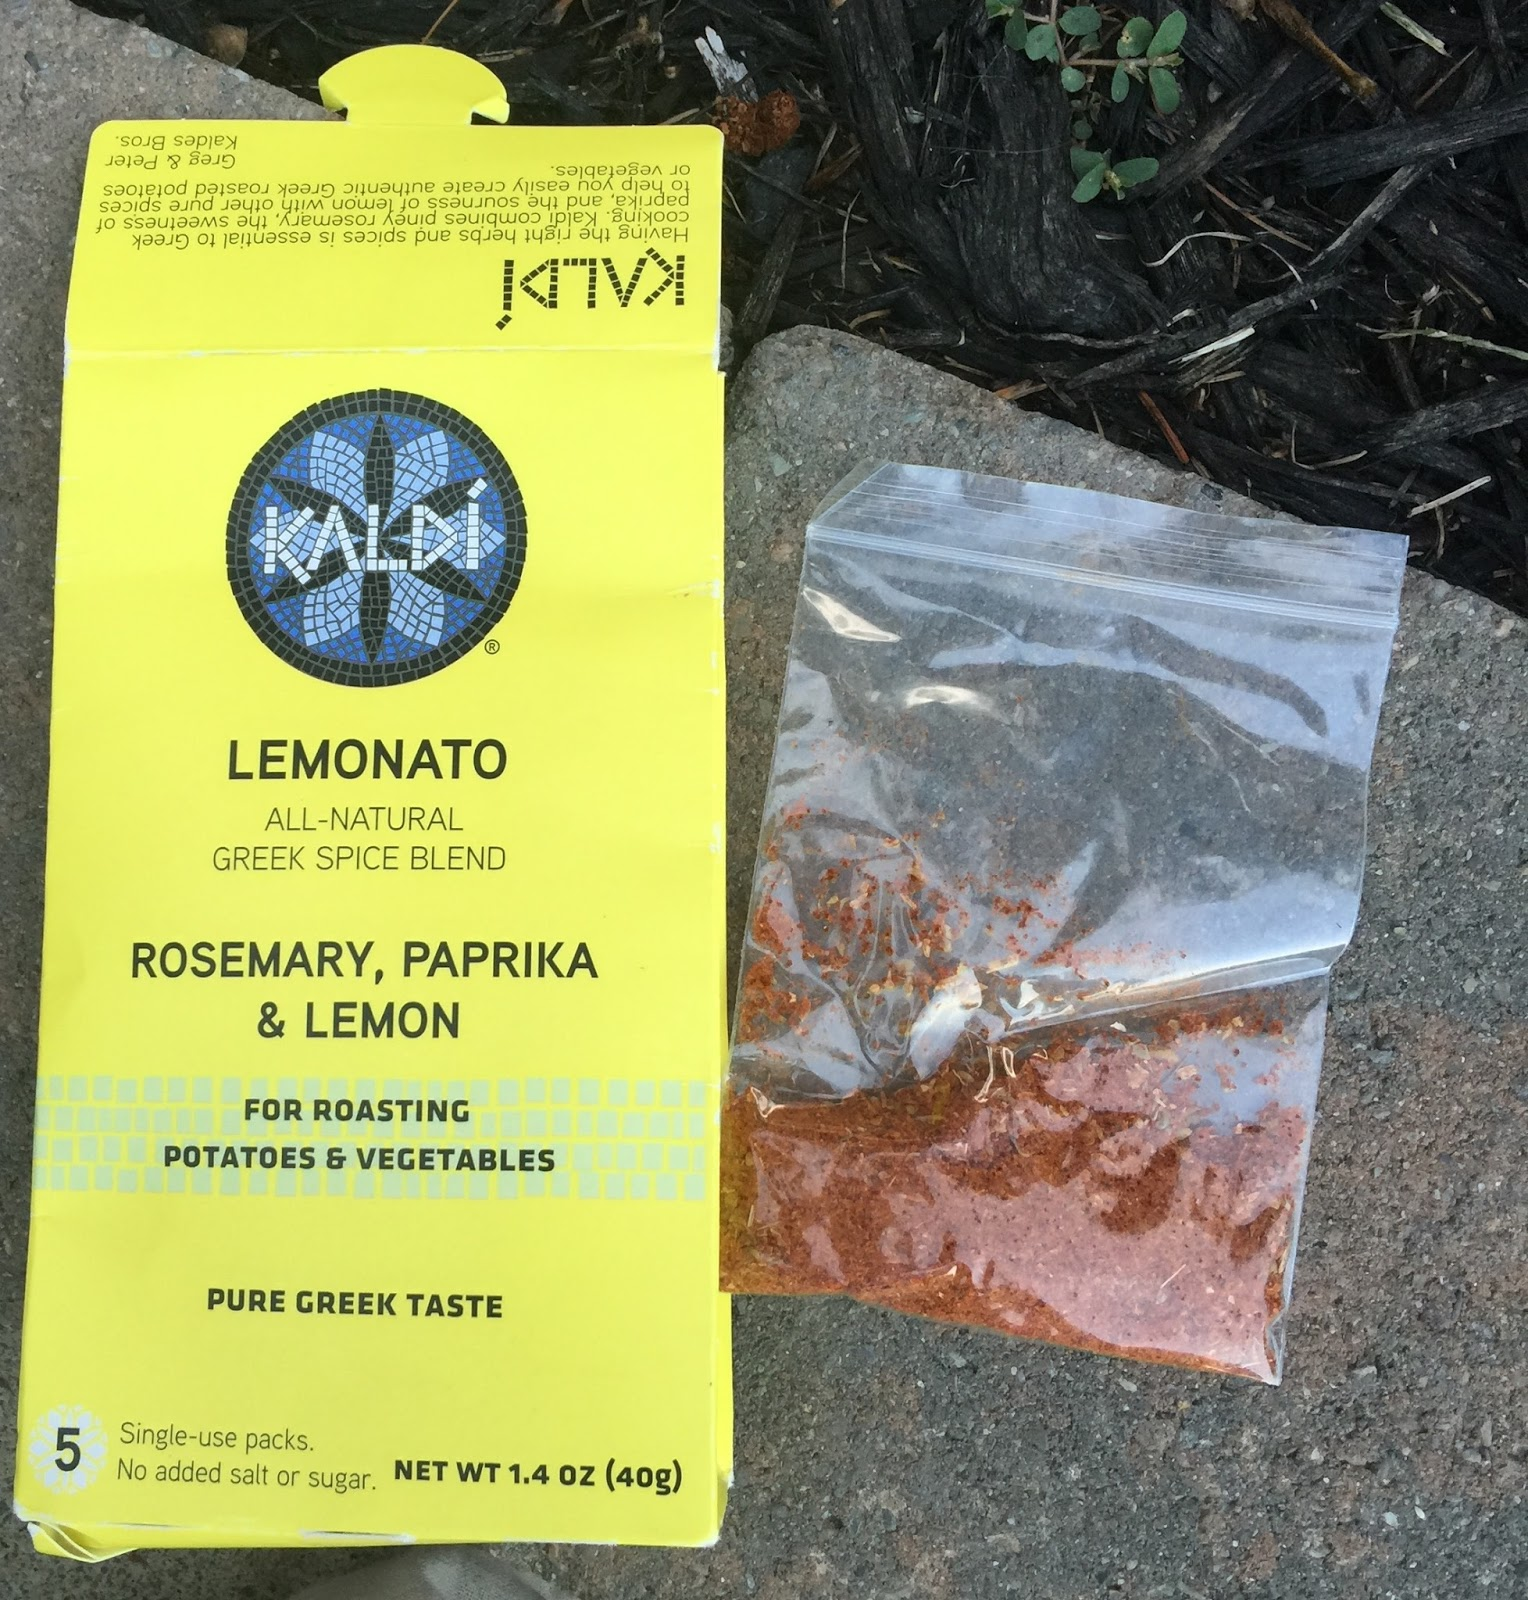 b1d9a817c738 The Lemonato added a spicy (garlic, mustardy-rosemary) -citrusy (lemon oil)  umph to steamed vegetables...and fab for grilling---vegetables or  fish...$4.99